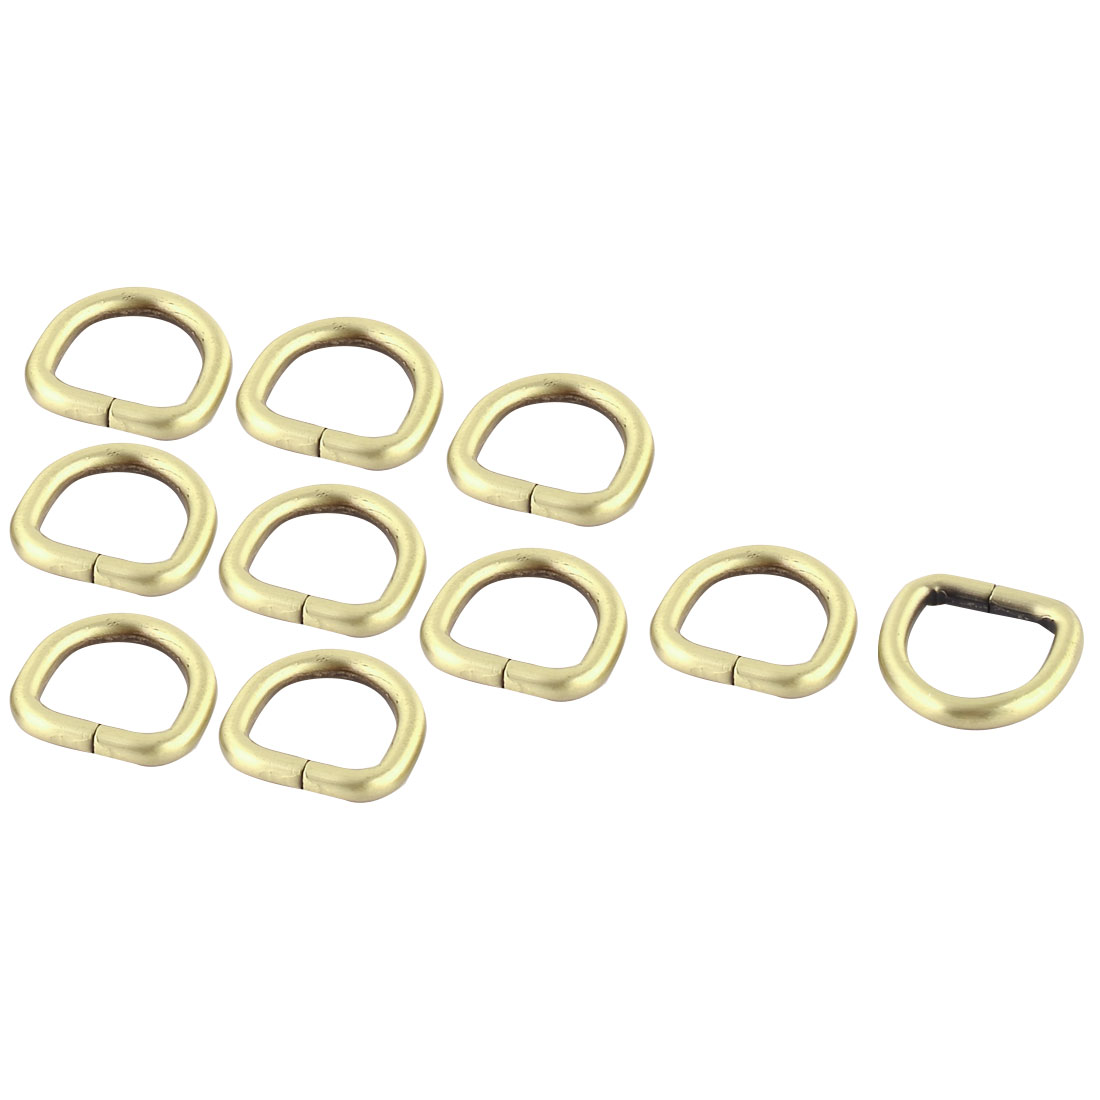 """Luggage Metal D Shaped Ring Buckle 0.8"""" x 0.75"""" Inside Size Bronze Tone 10 Pcs"""